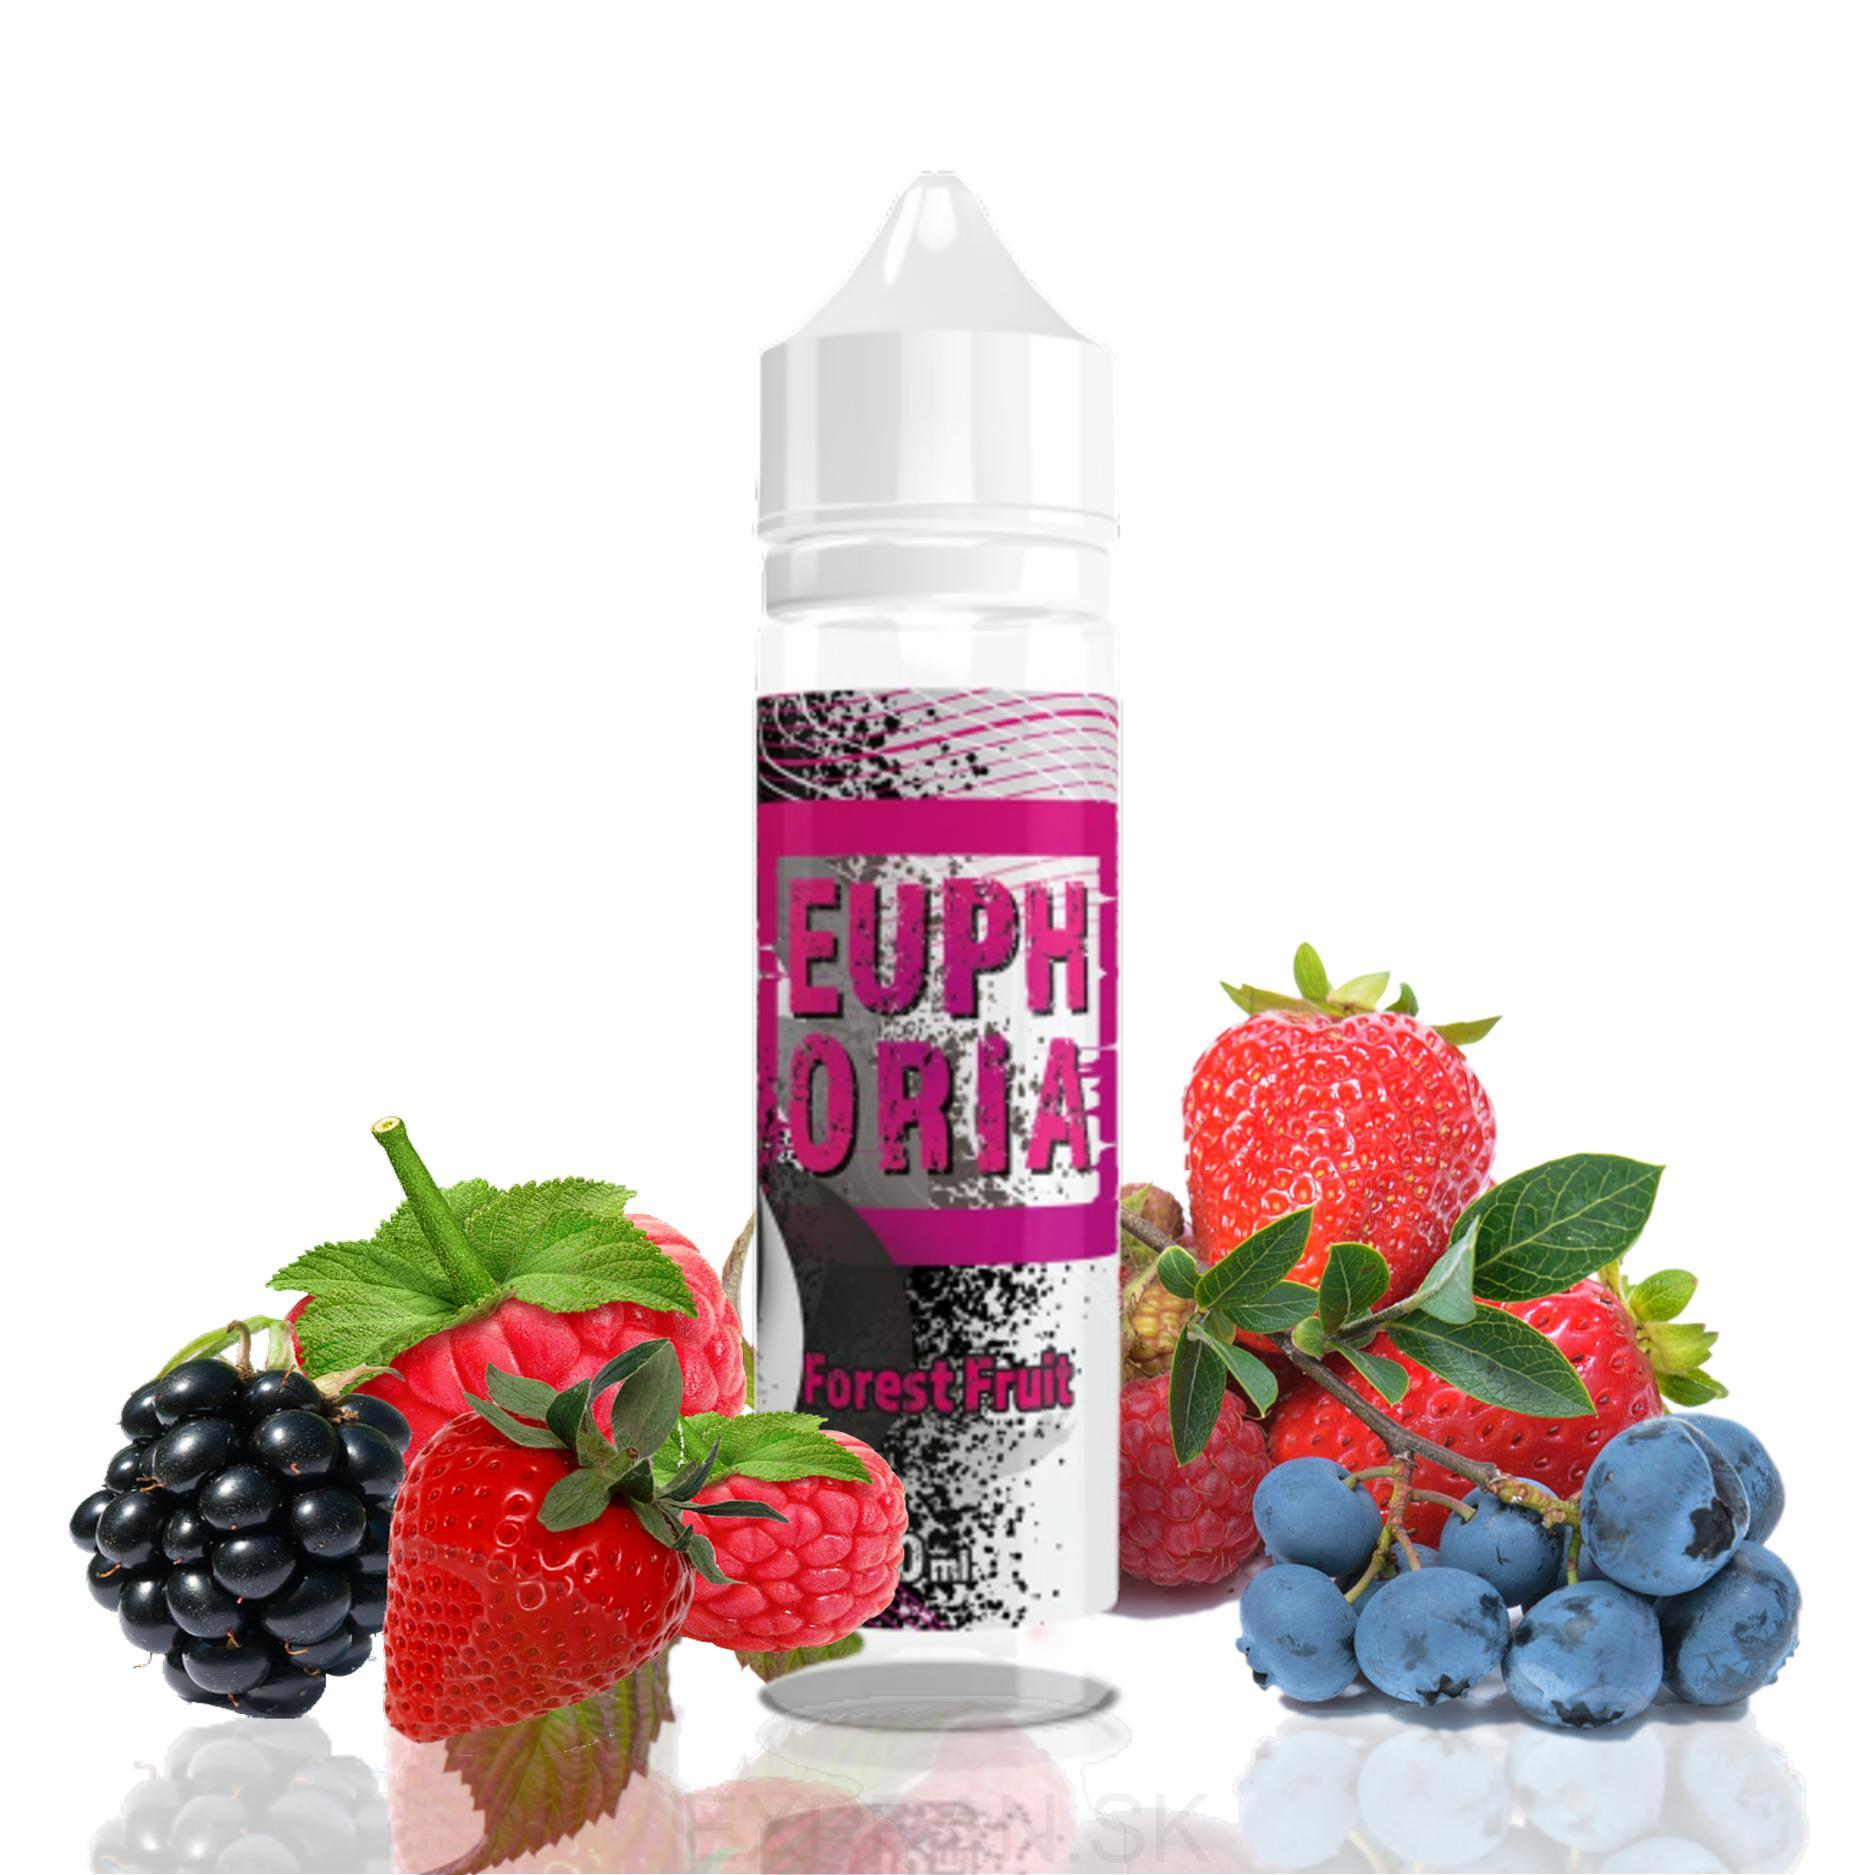 10 ml Euphoria - Forest Fruit (Shake & Vape)